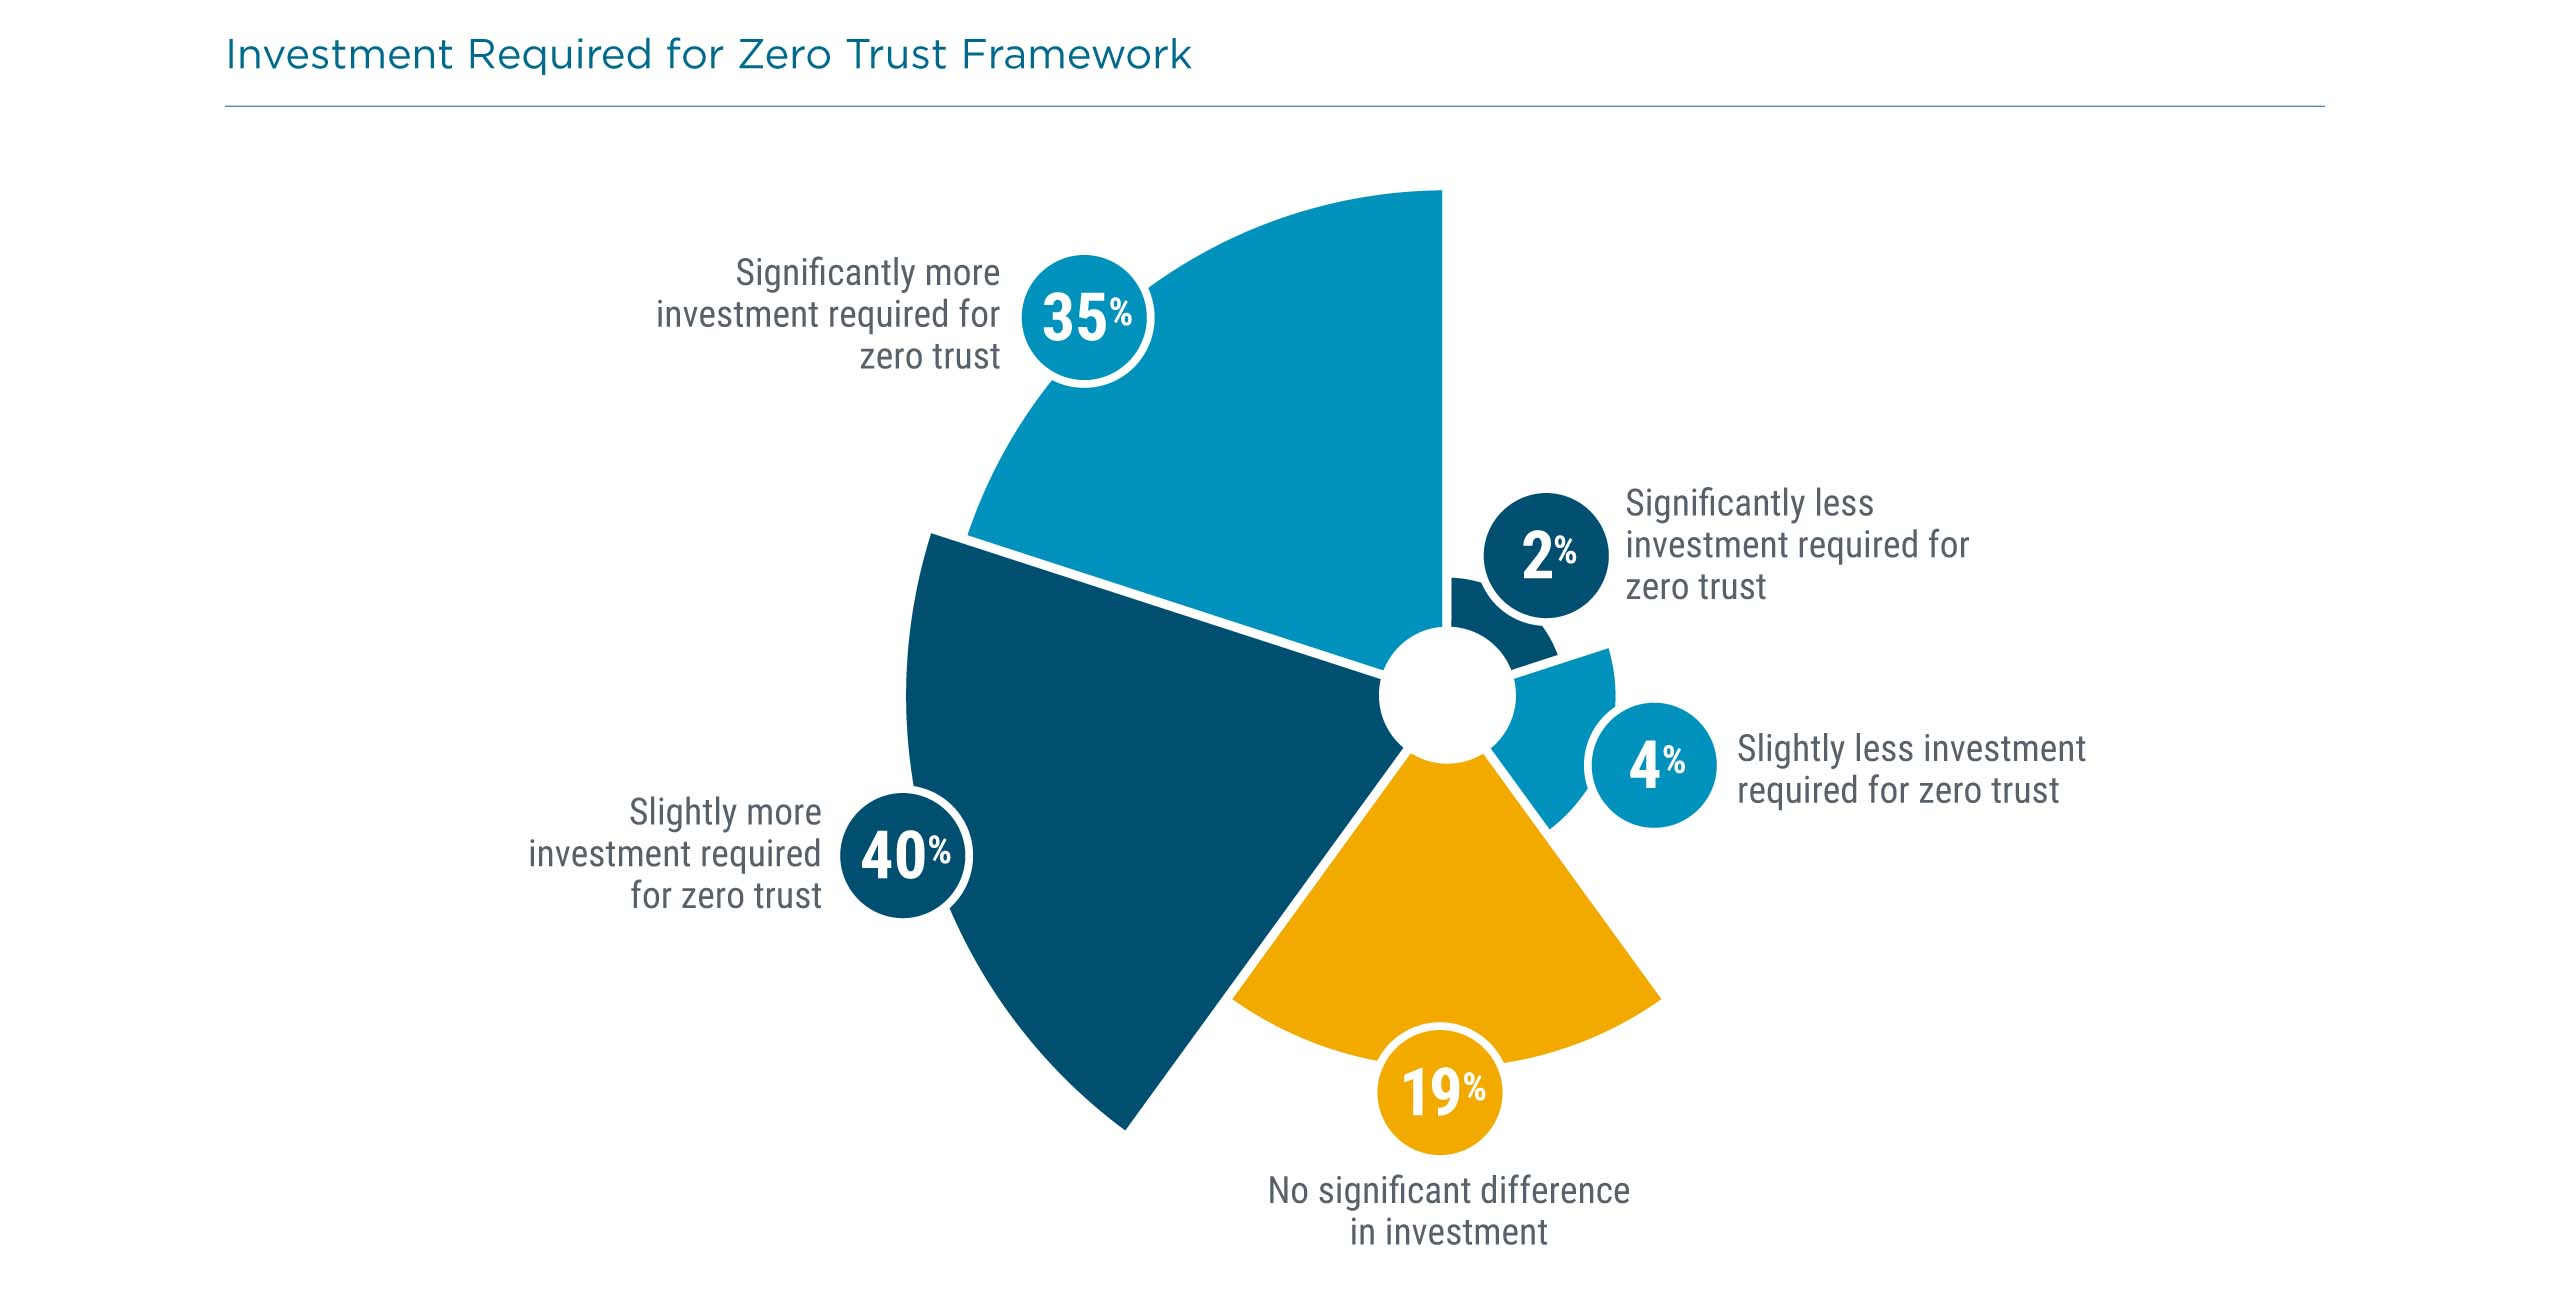 Investment Required for Zero Trust Framework